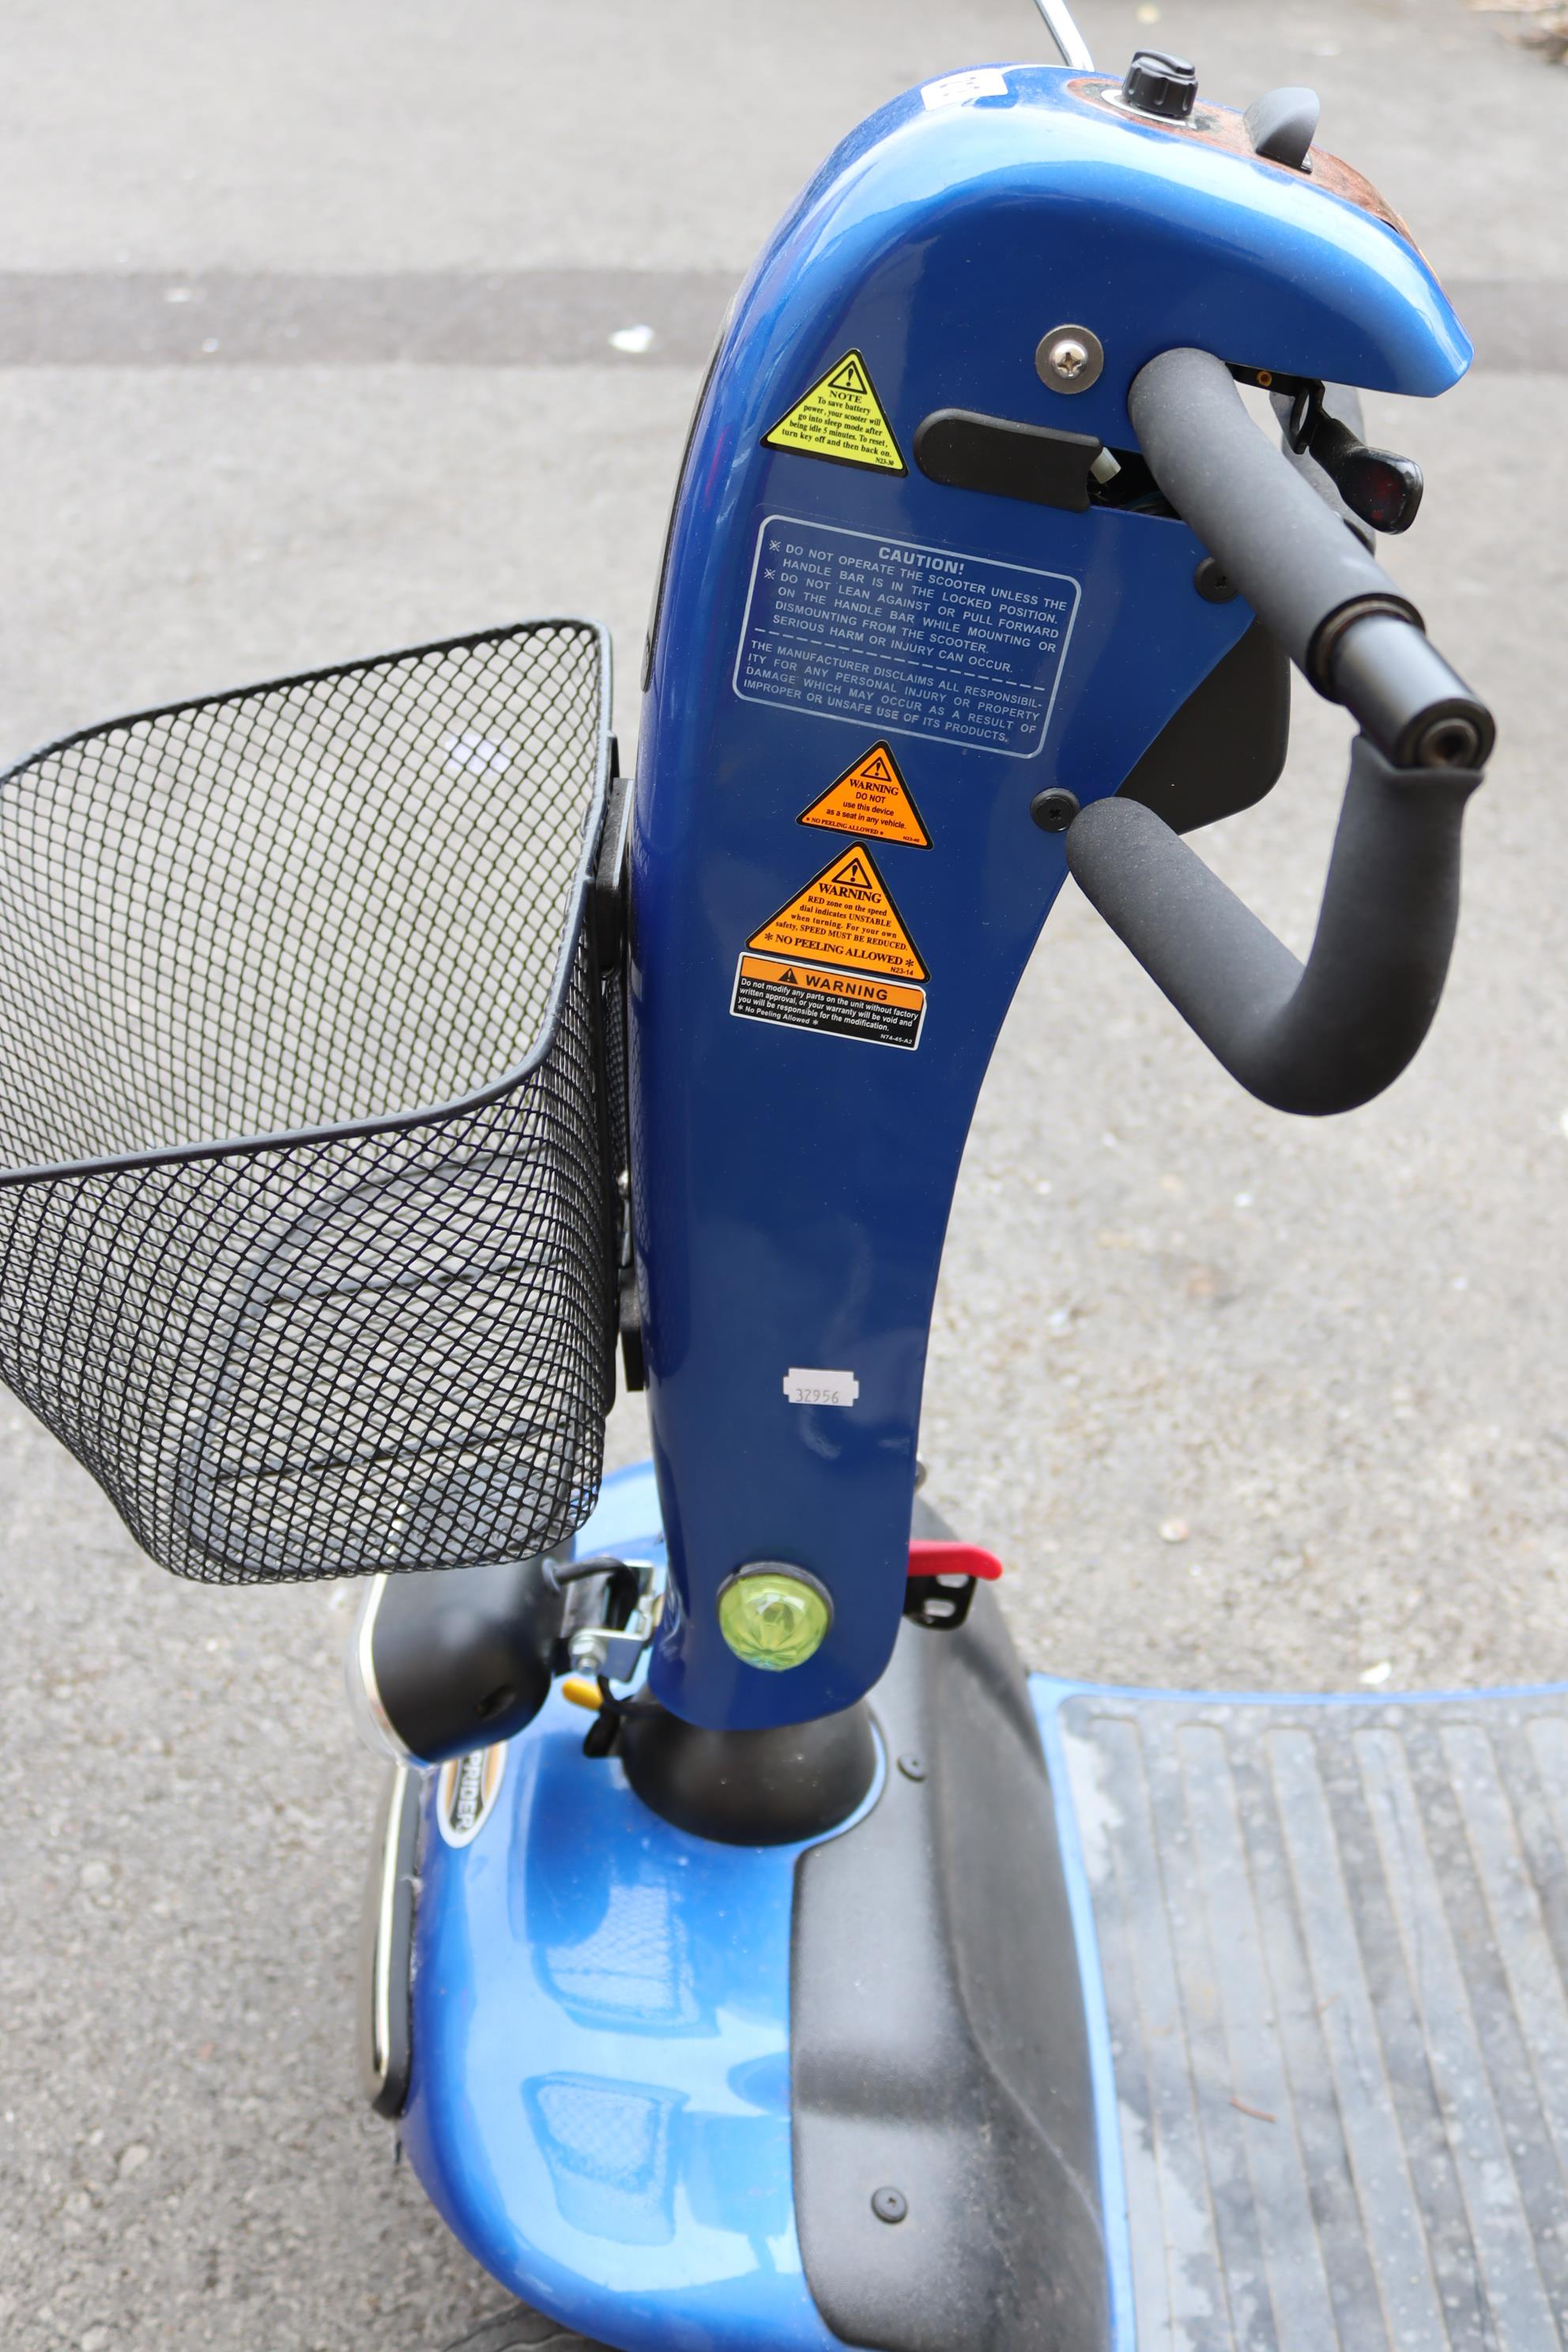 A Shoprider mobility scooter with battery, charger, & key. - Image 4 of 8